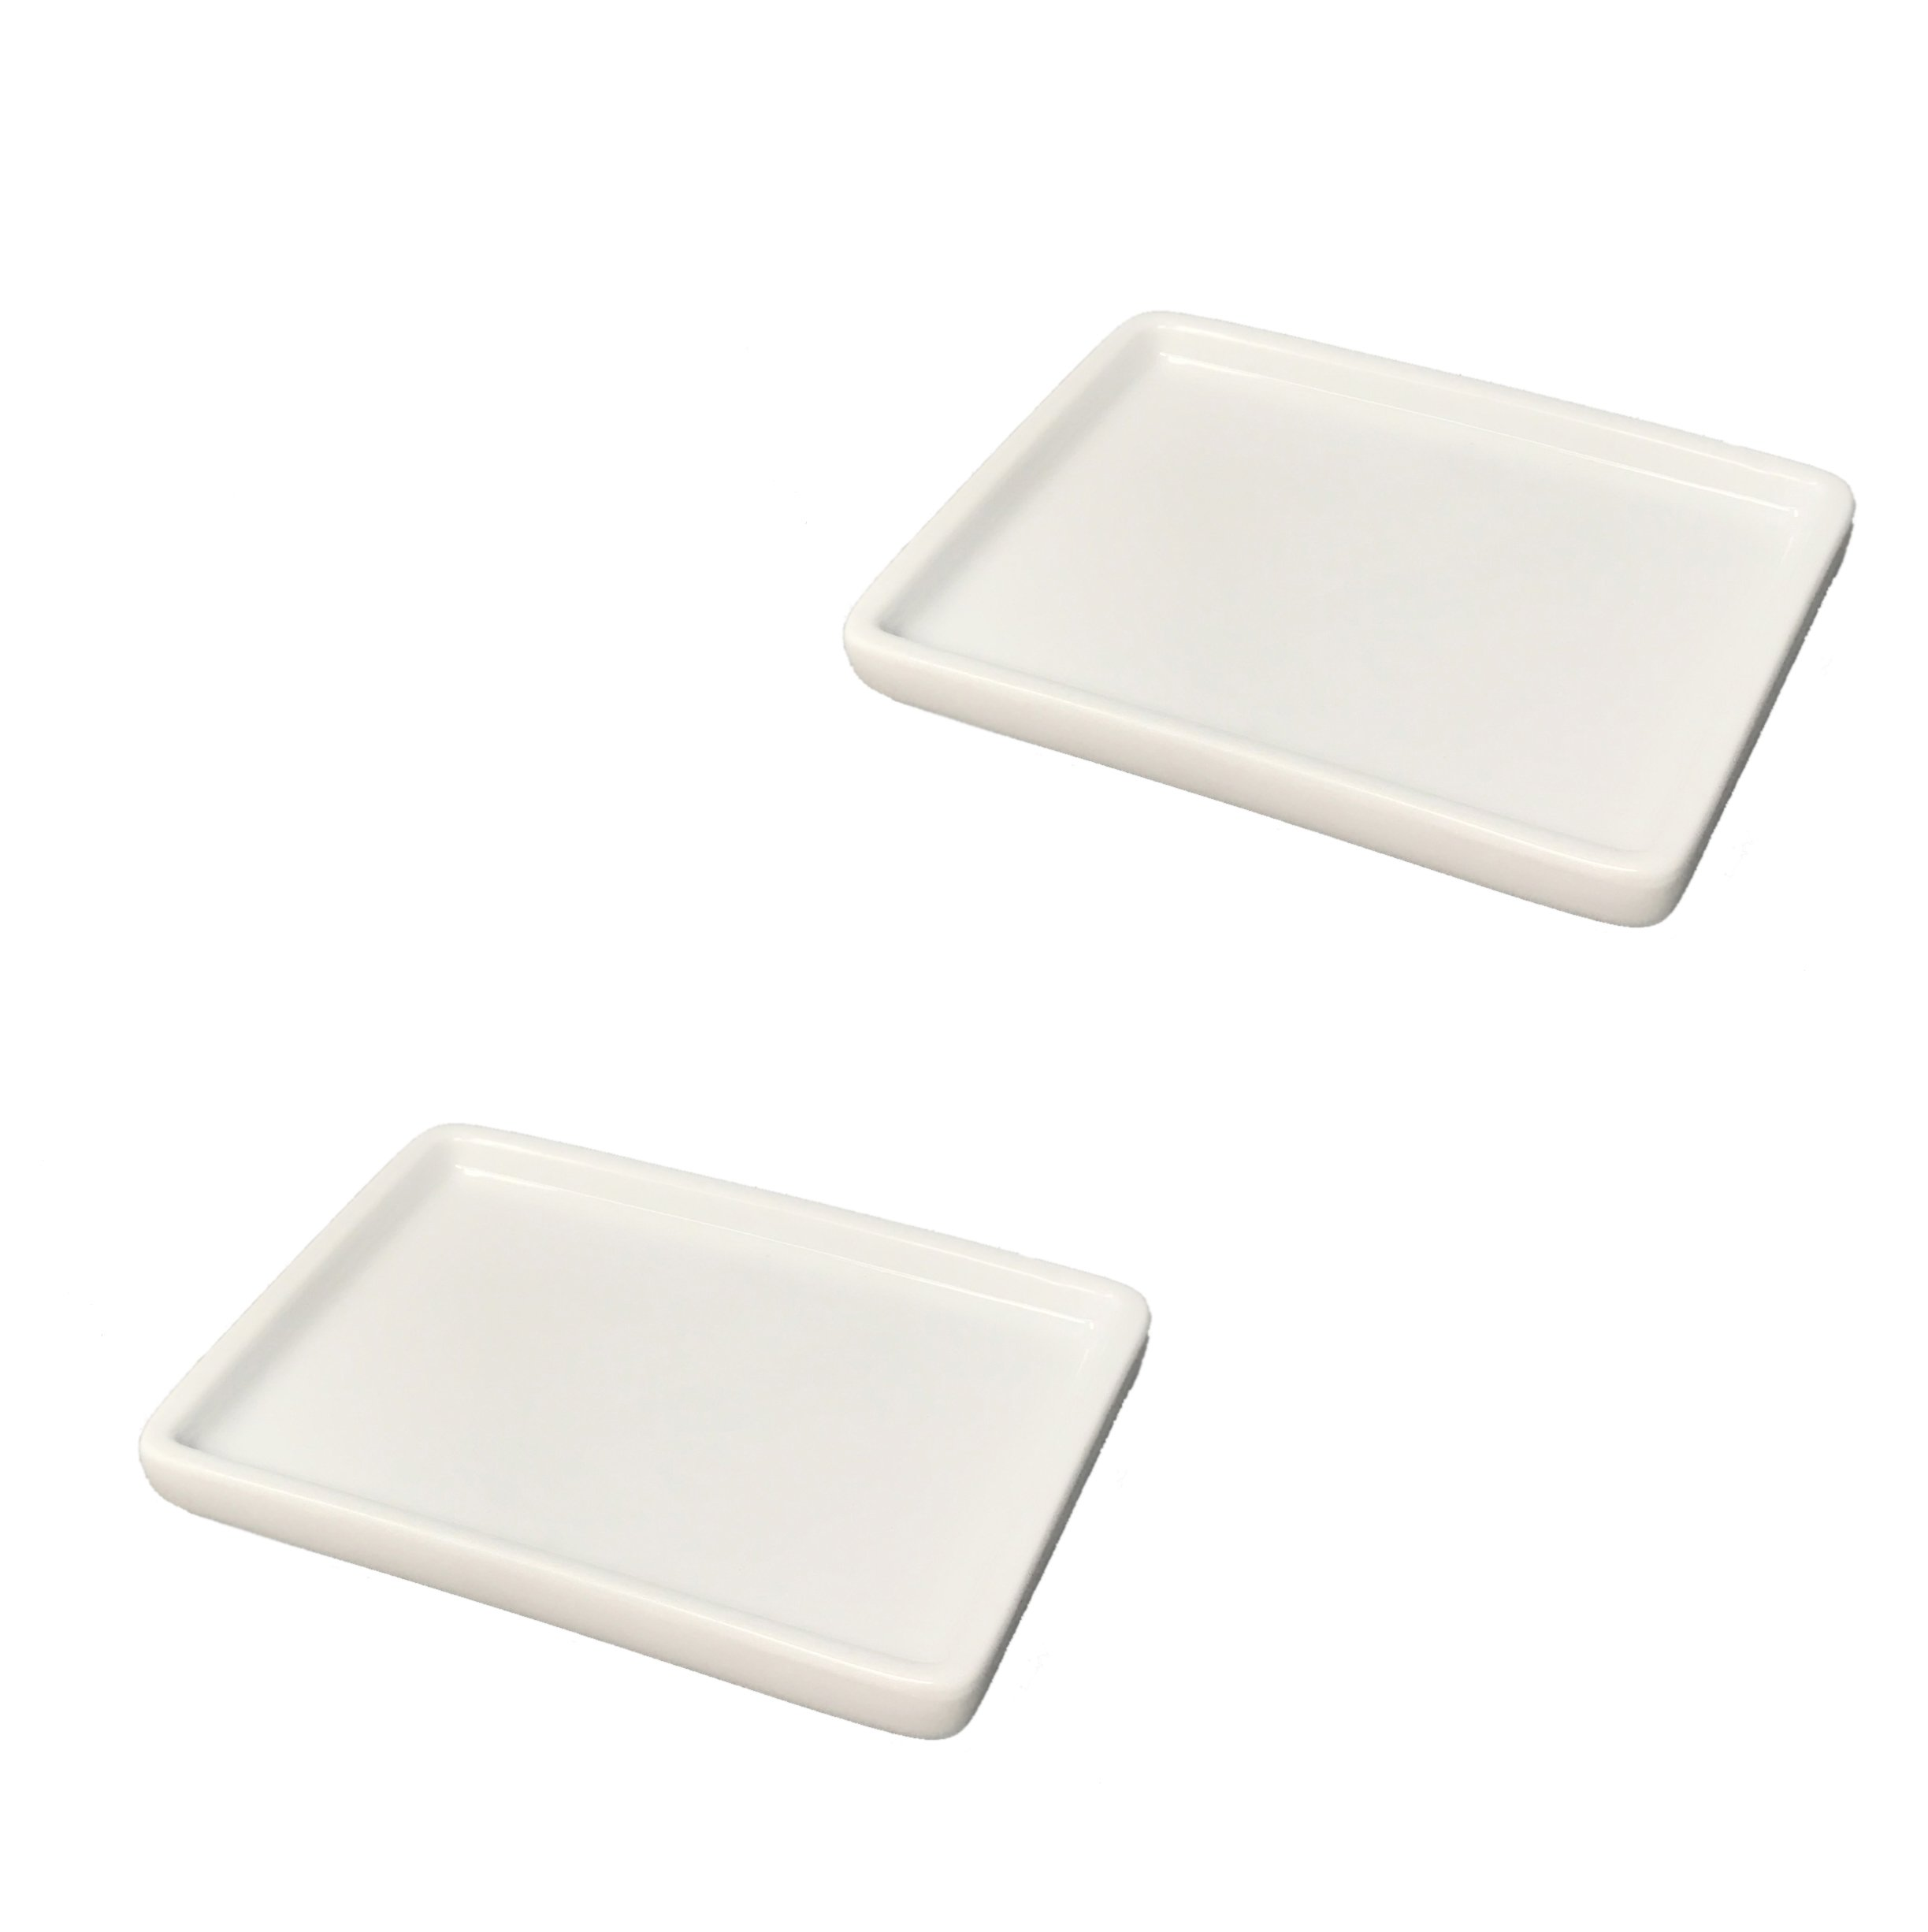 Tetra-Teknica Less is More Series SD-2P Porcelain Soap Dish, Color White, 2 per Pack